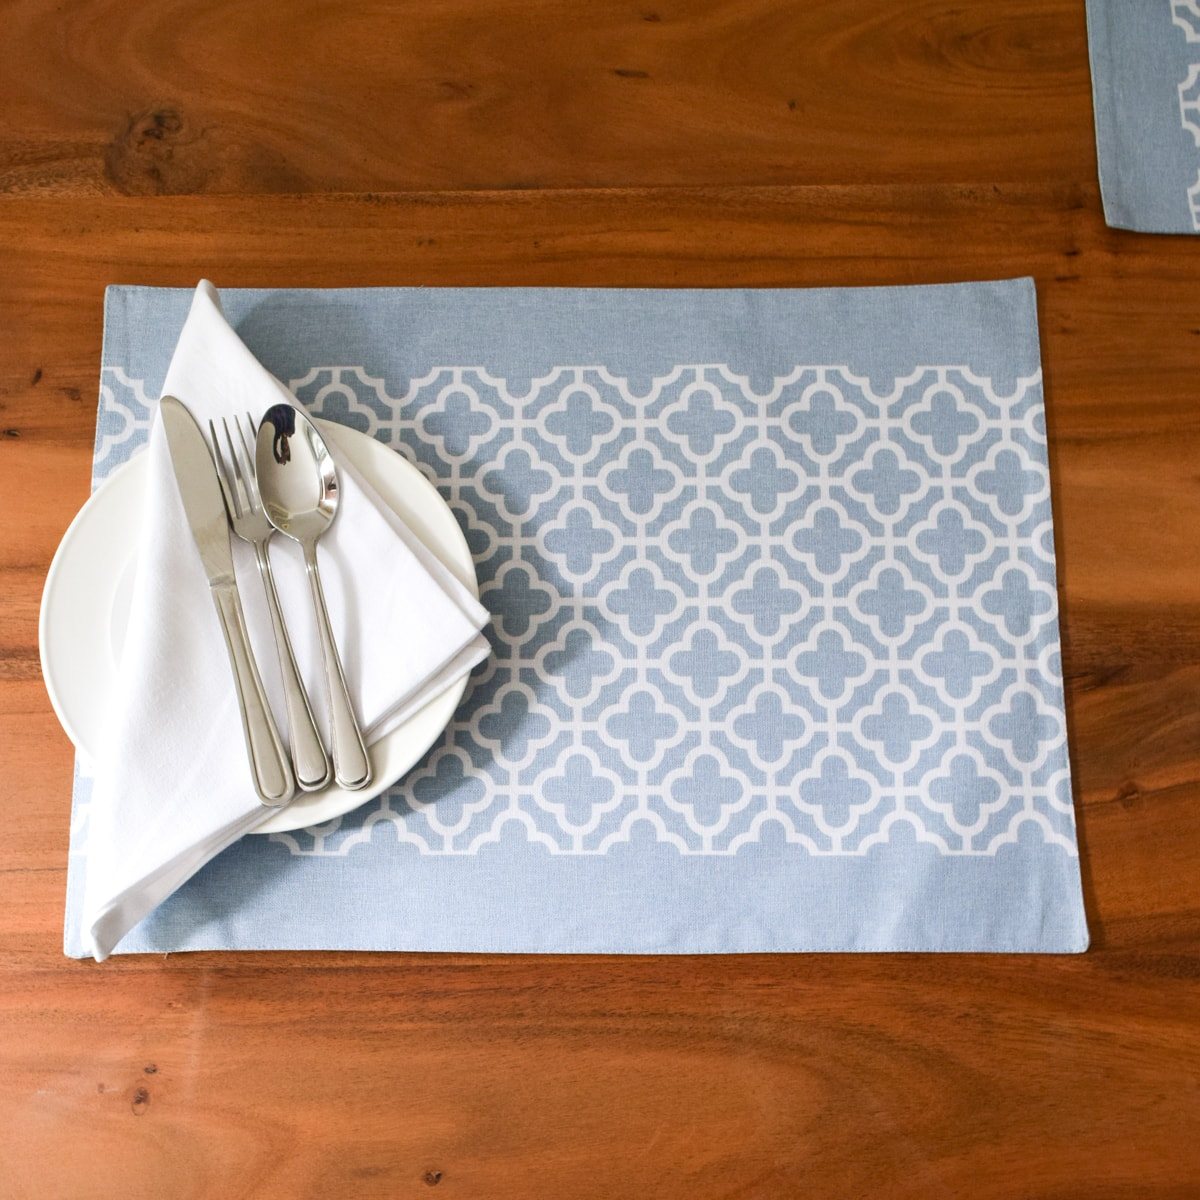 Eileen Blue and White Trellis Placemats with Napkins - Set of 2 - Home Artisan_1